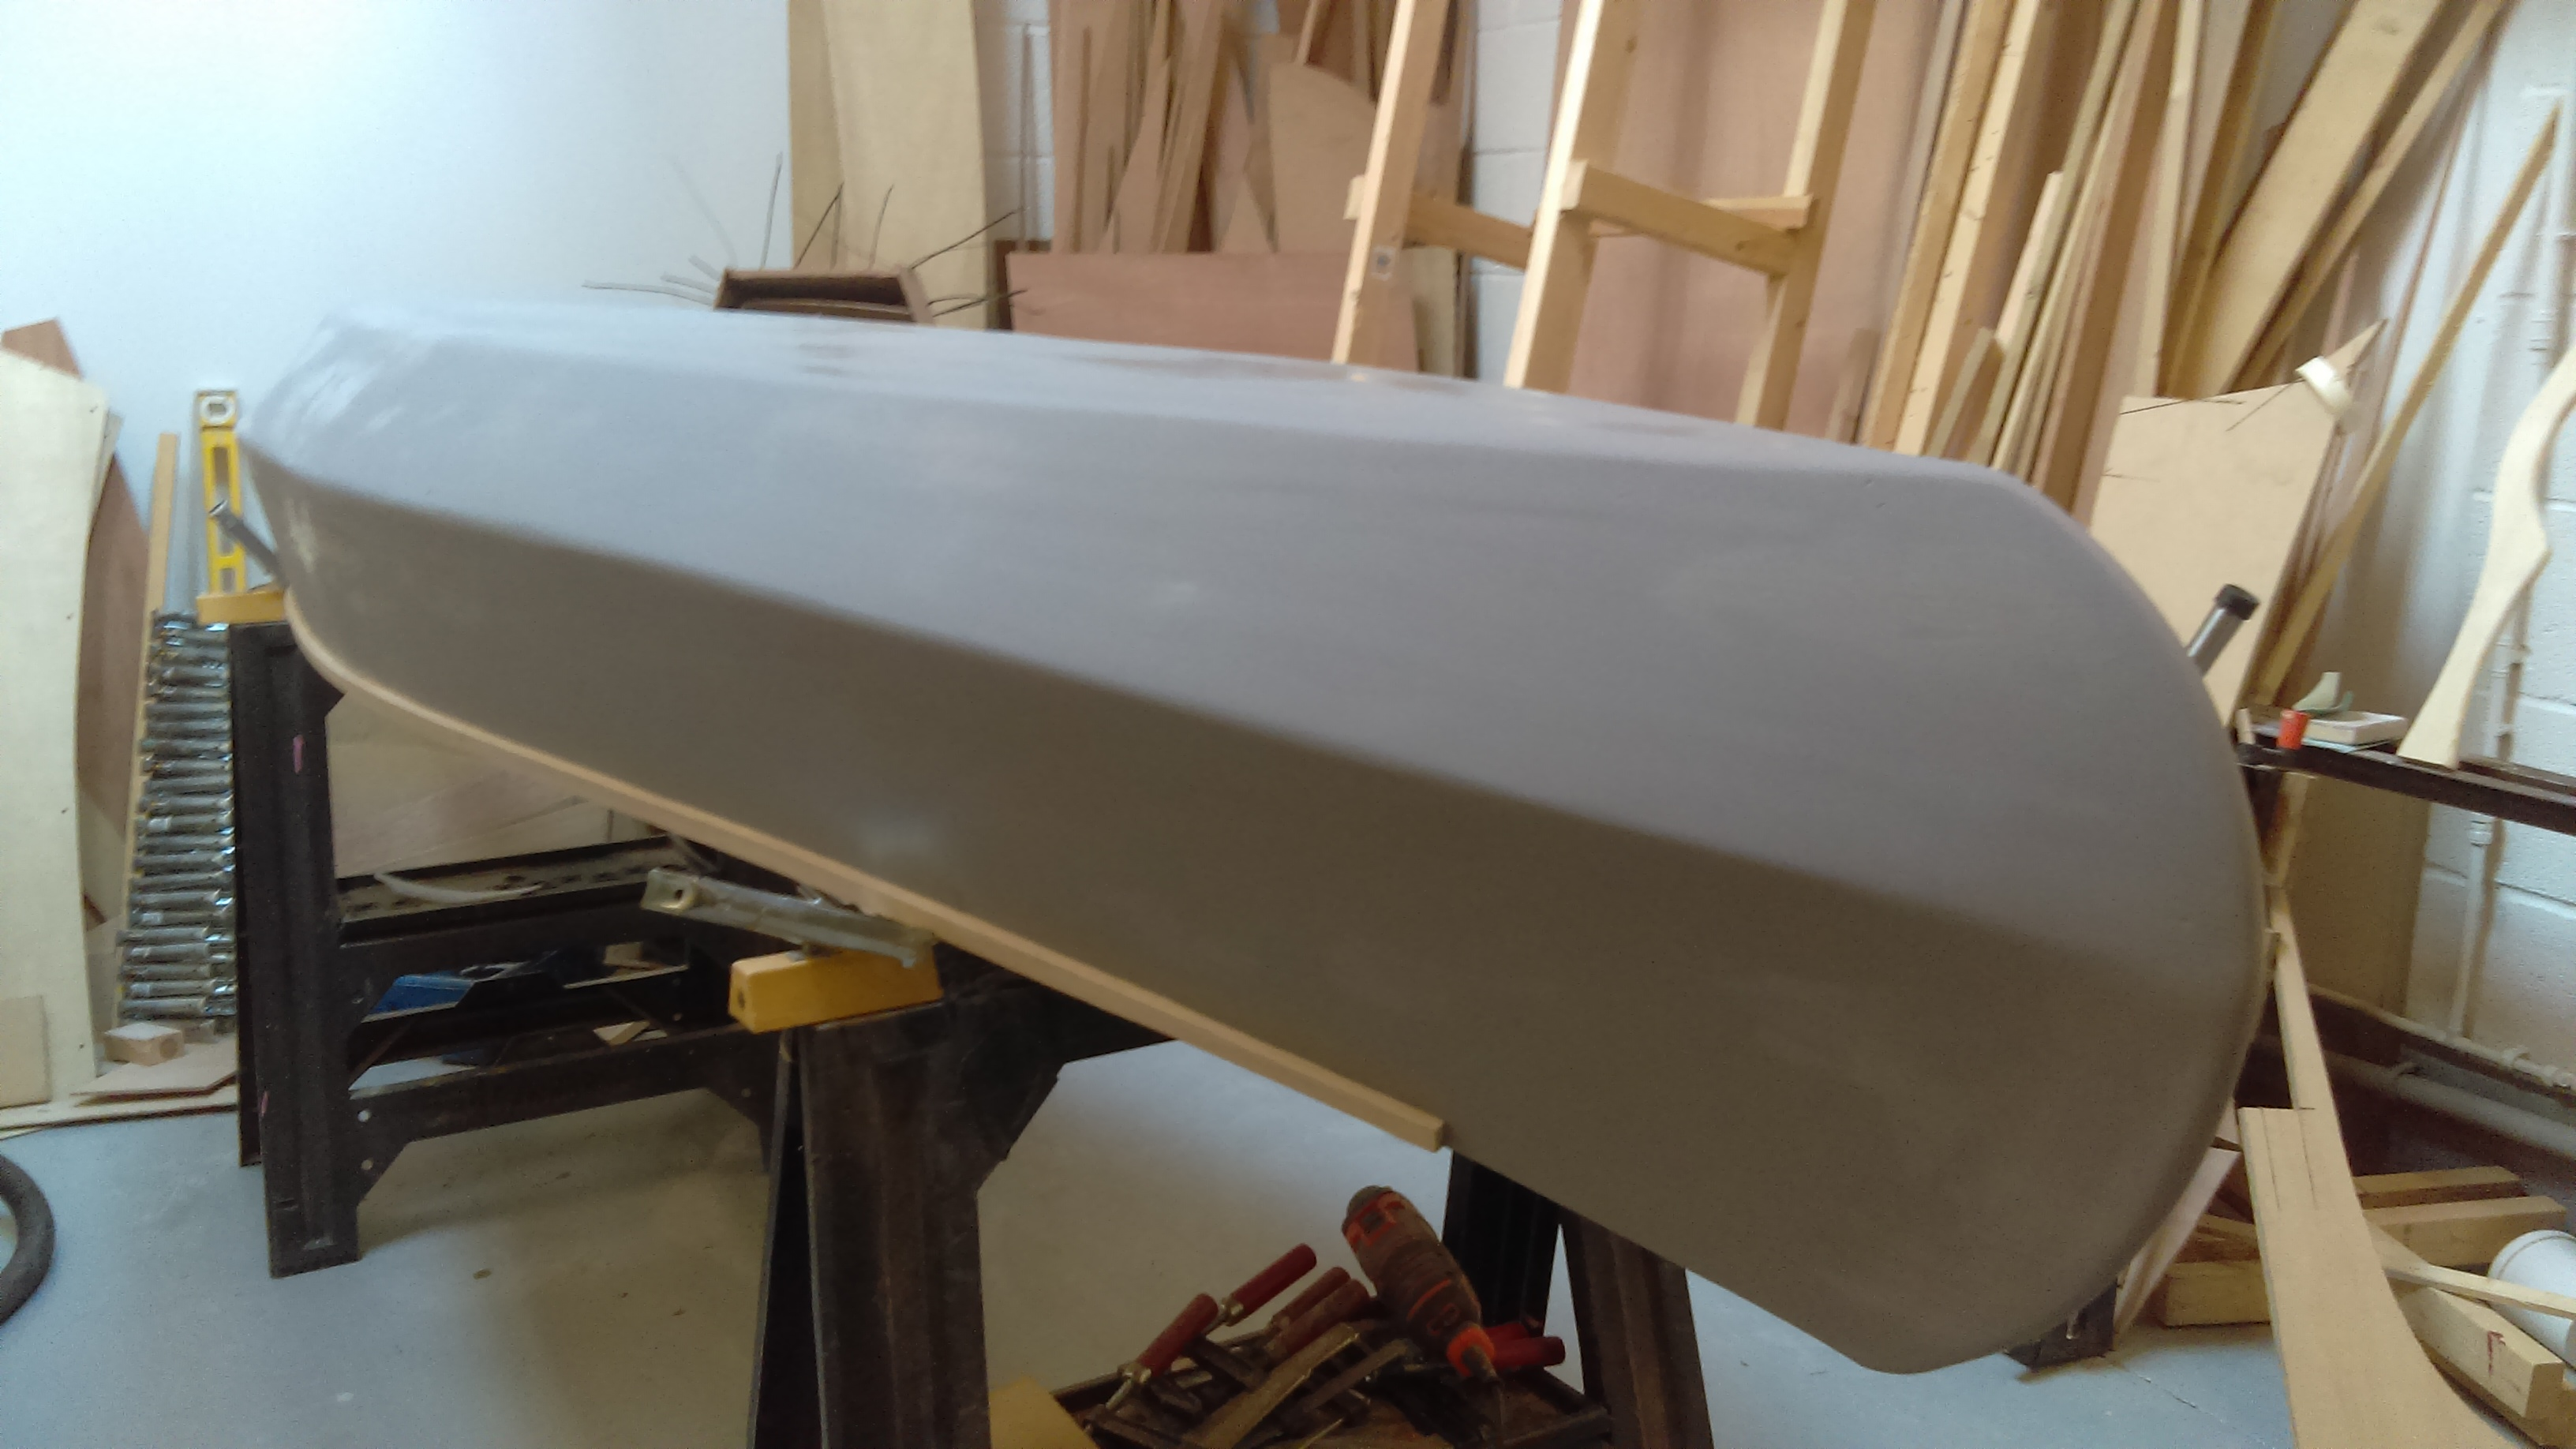 25 Aftre the whole hull has been sanded smooth, taking care not to damage taped areas, it is underco